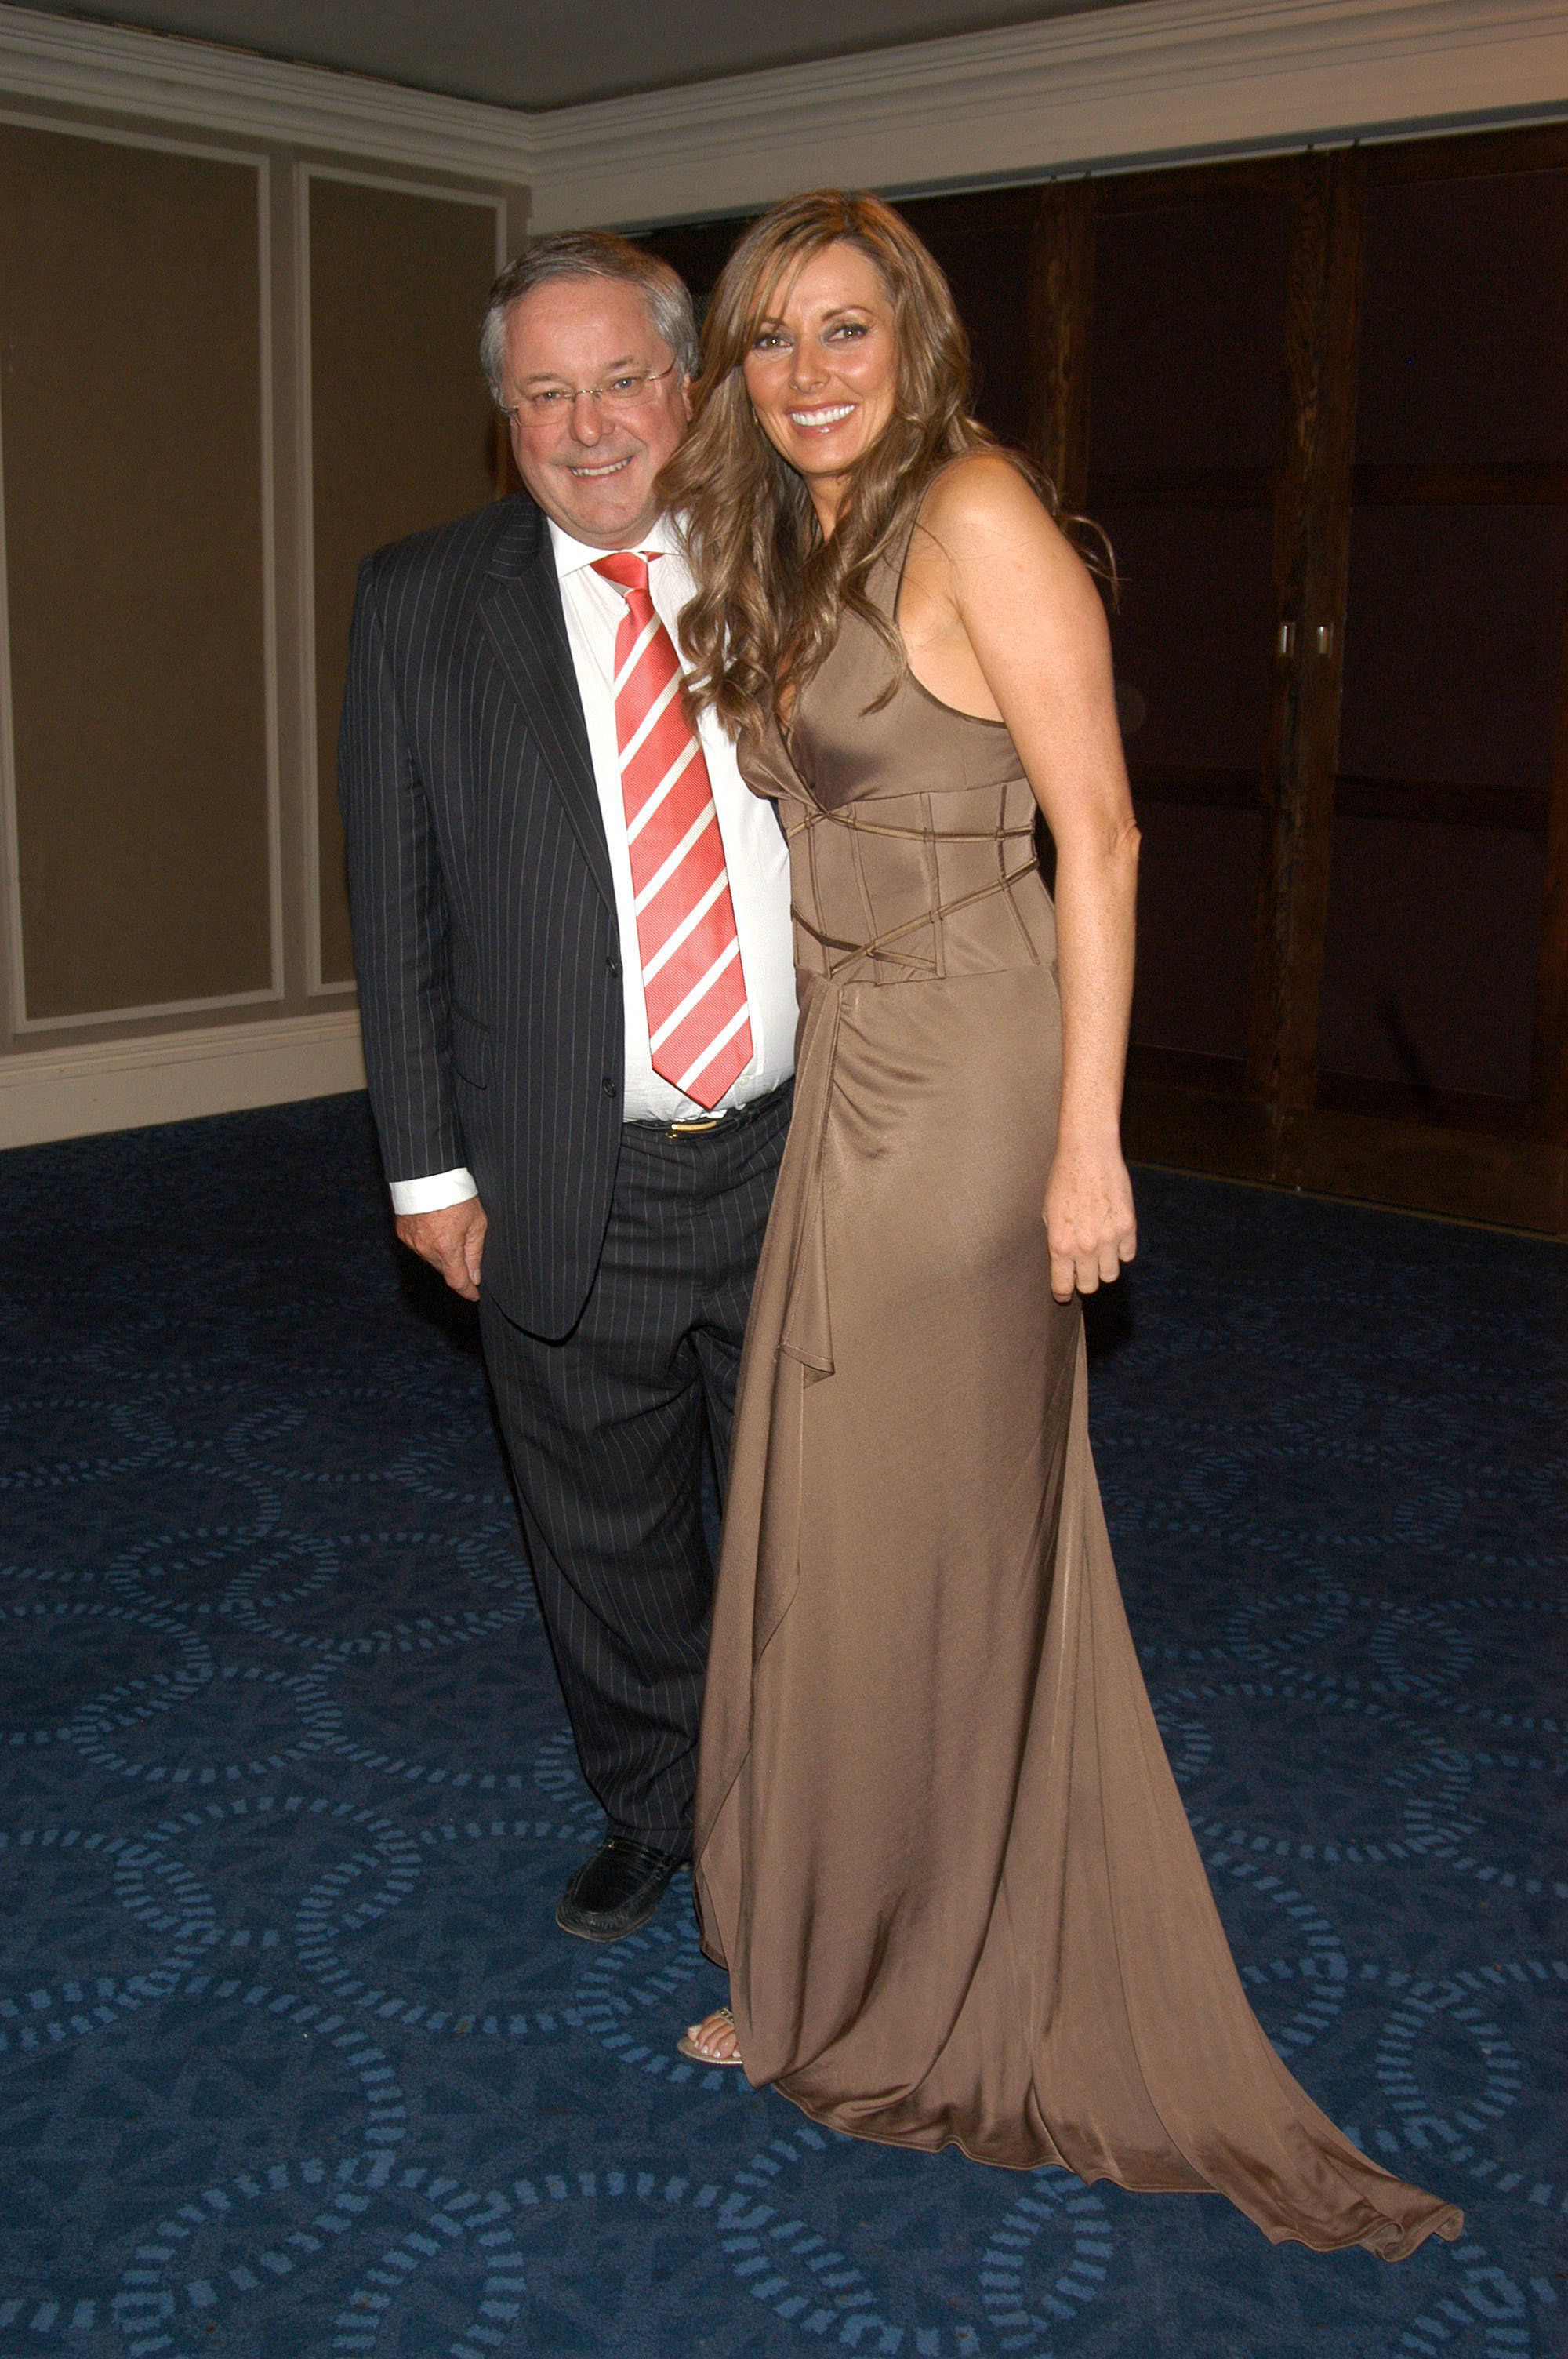 Carol Vorderman Has Her Say On Claims Richard Whiteley Was An MI5 Spy